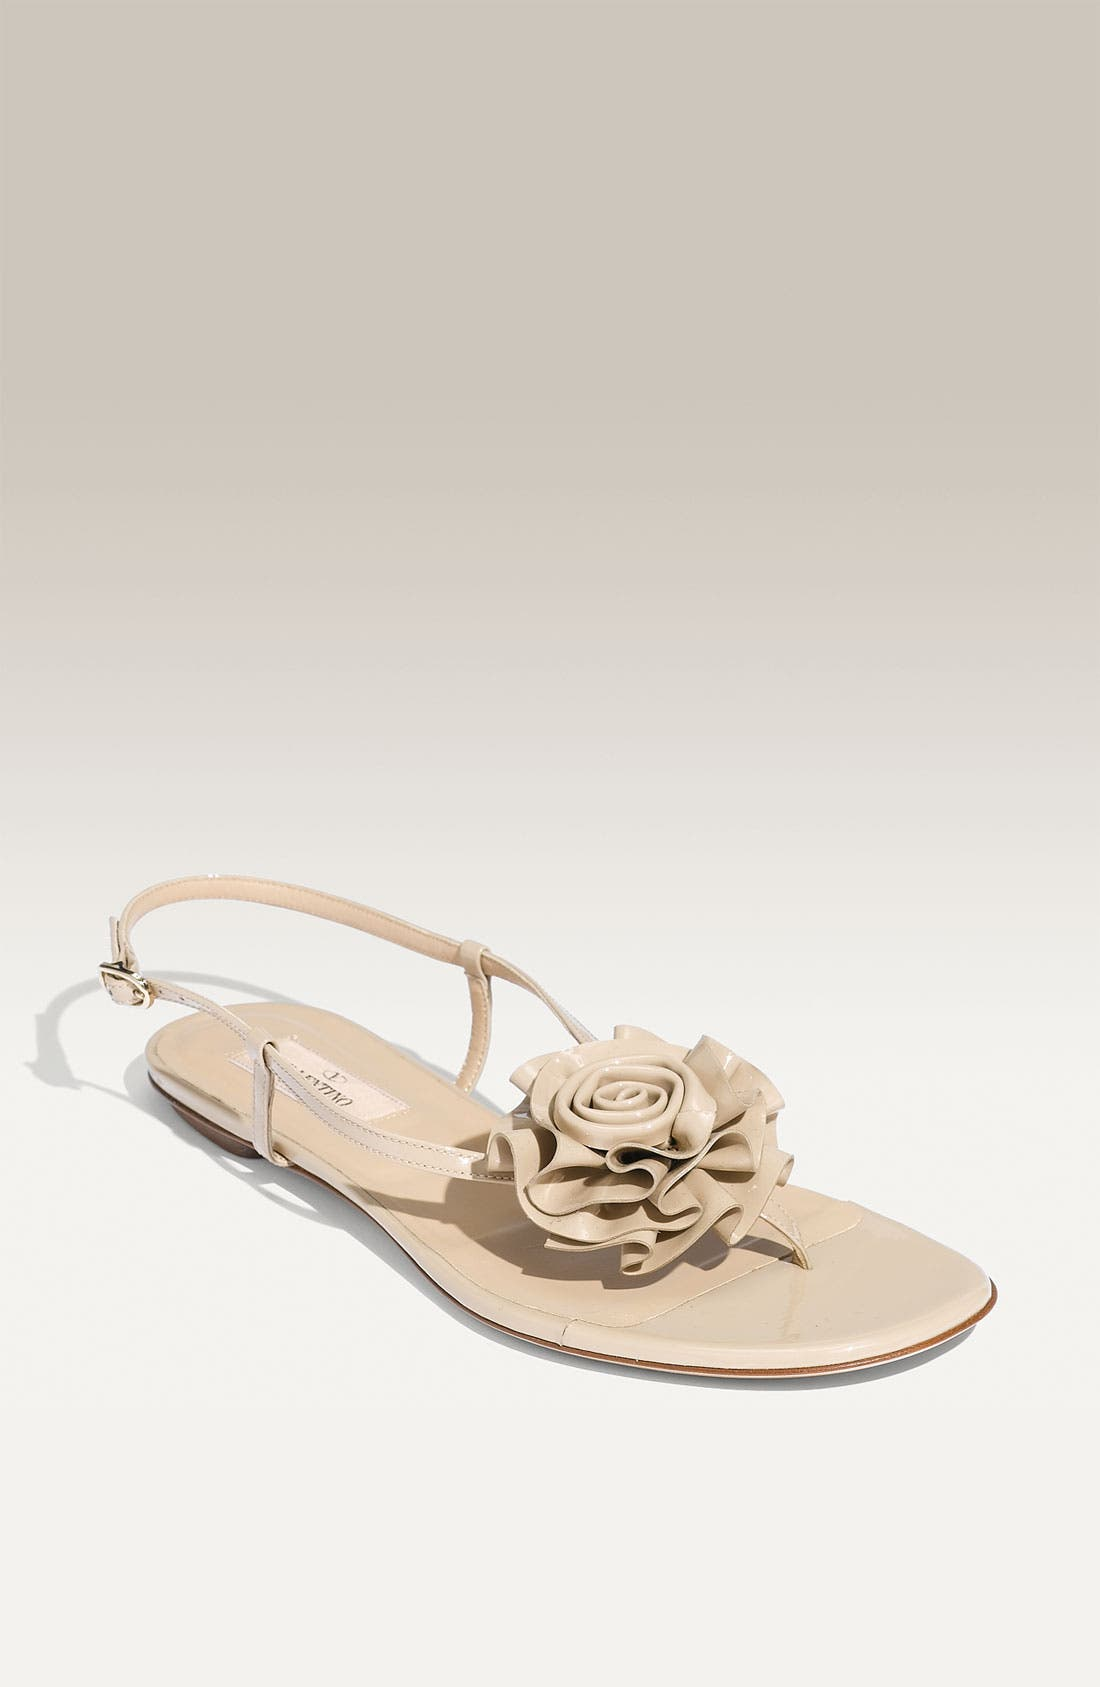 Alternate Image 1 Selected - Valentino 'Petale' Thong Sandal